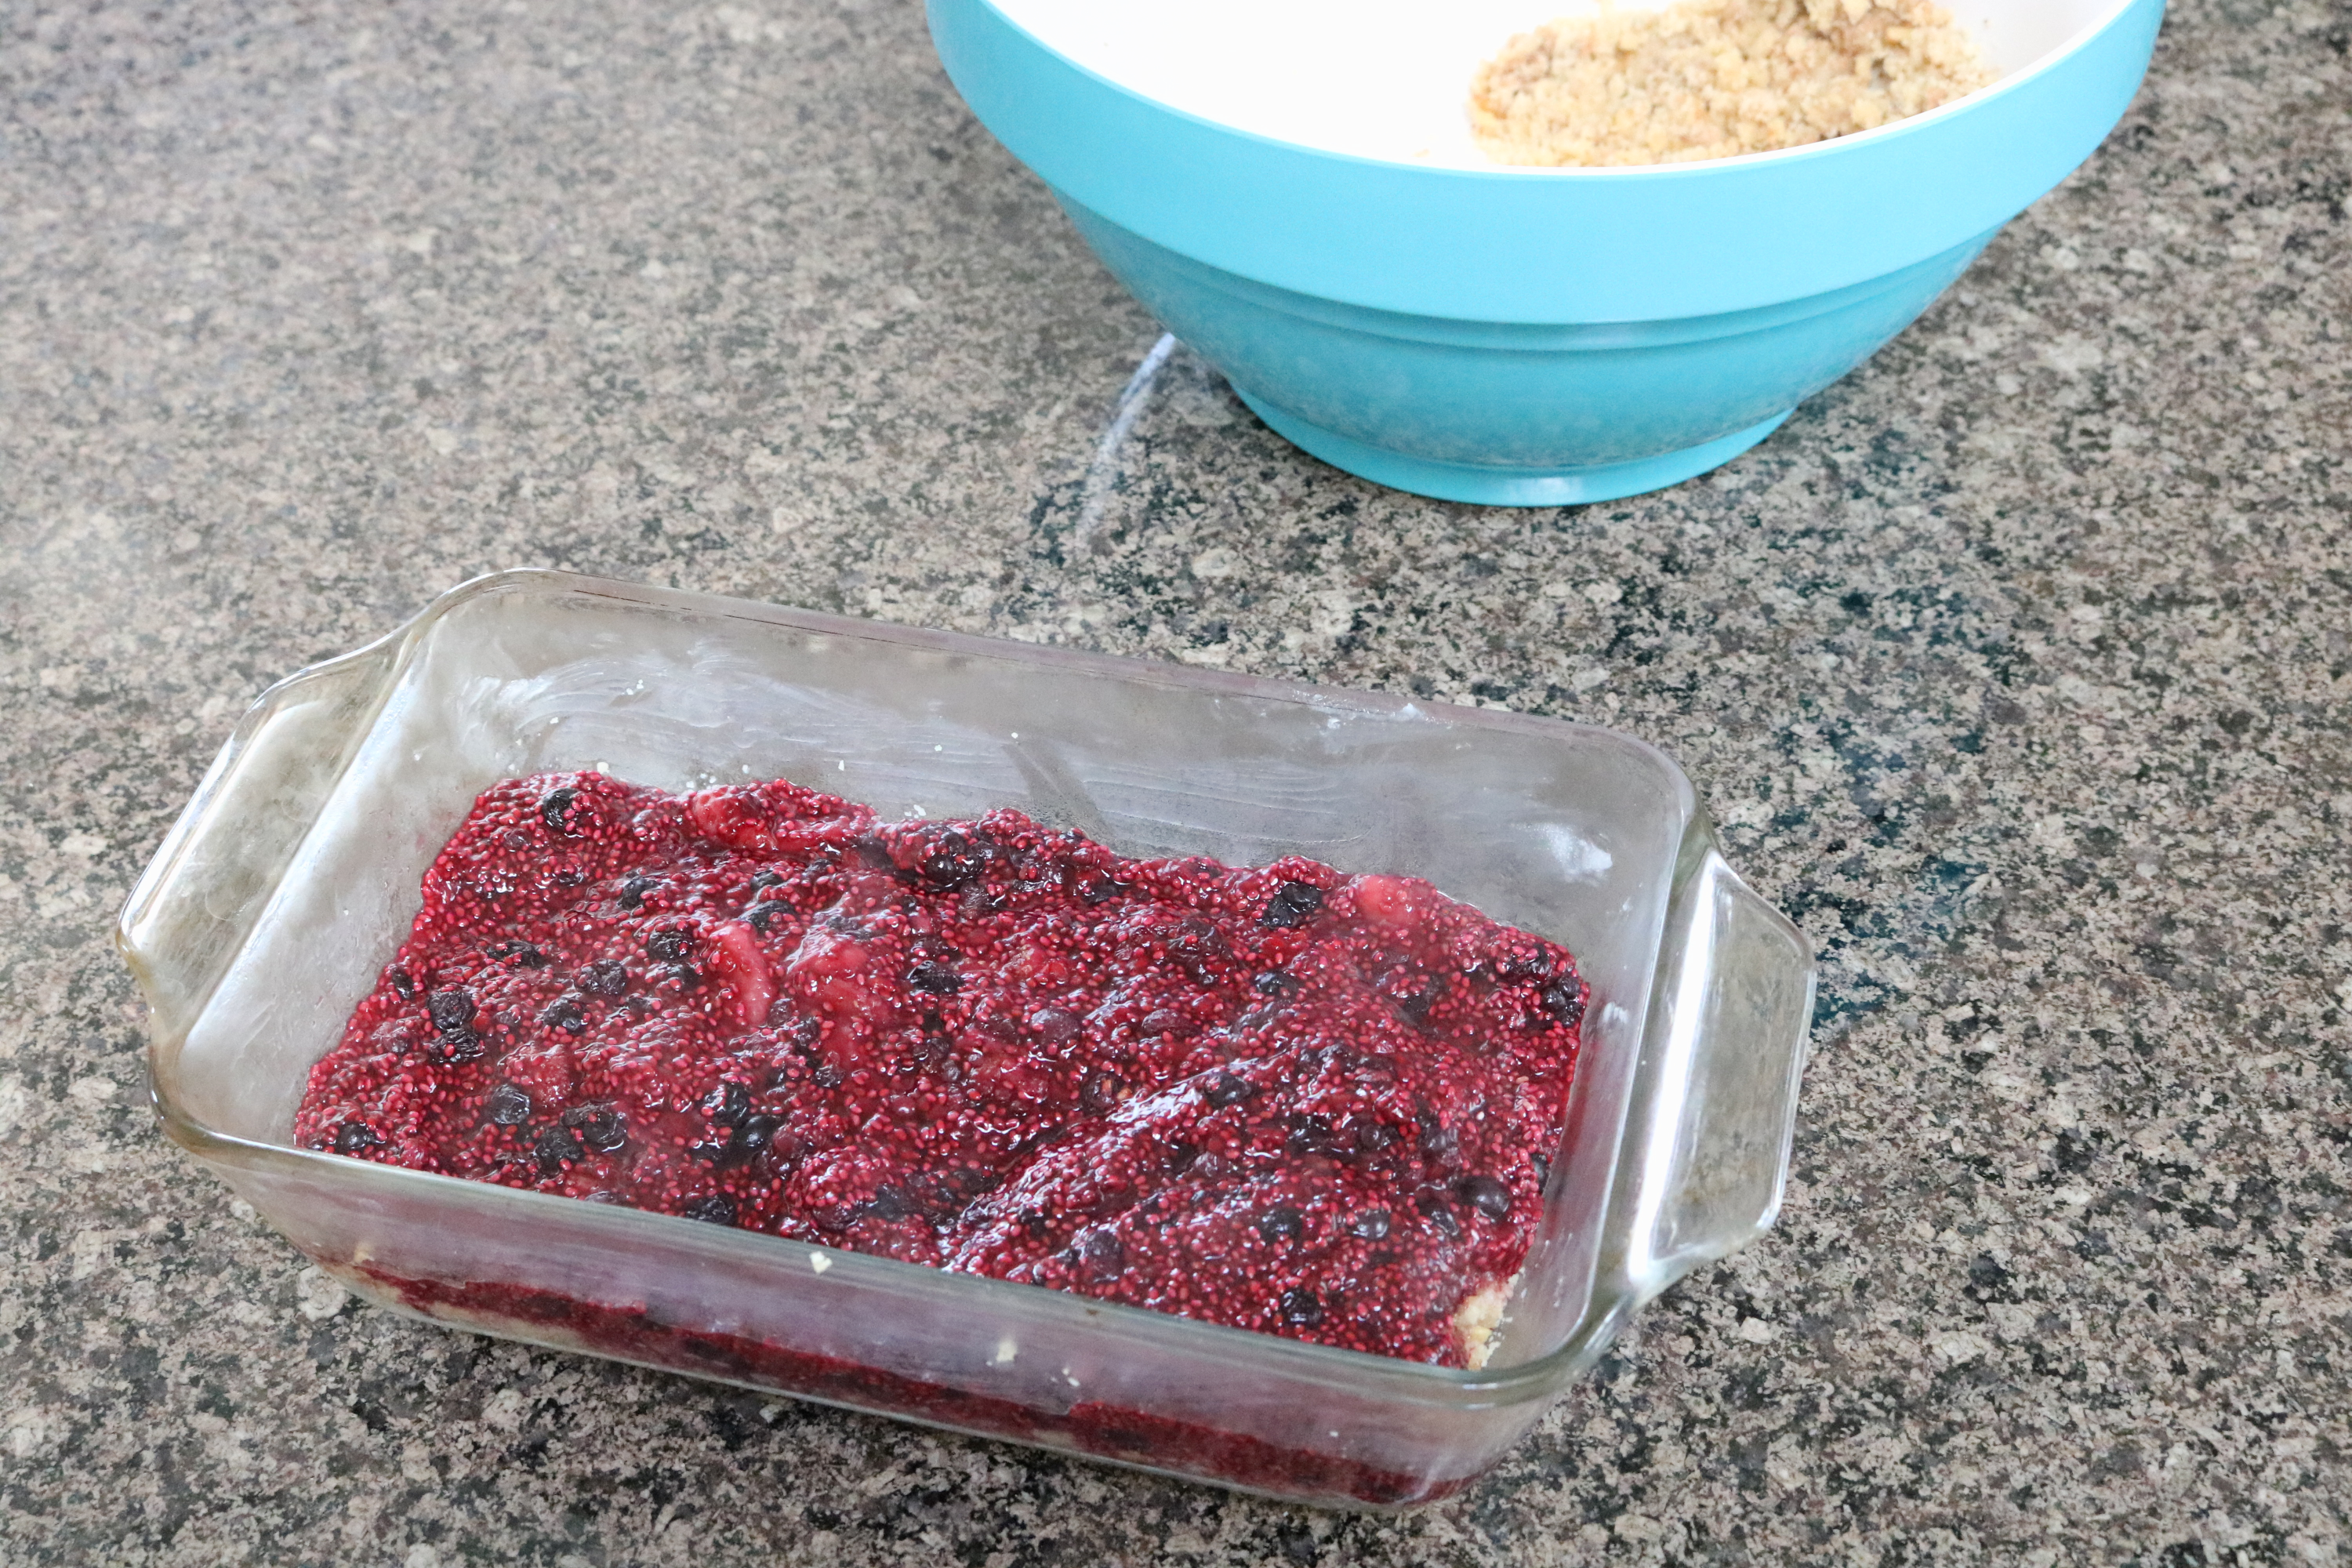 Berry crisp in a glass dish with a blue bowl of ingredients behind it